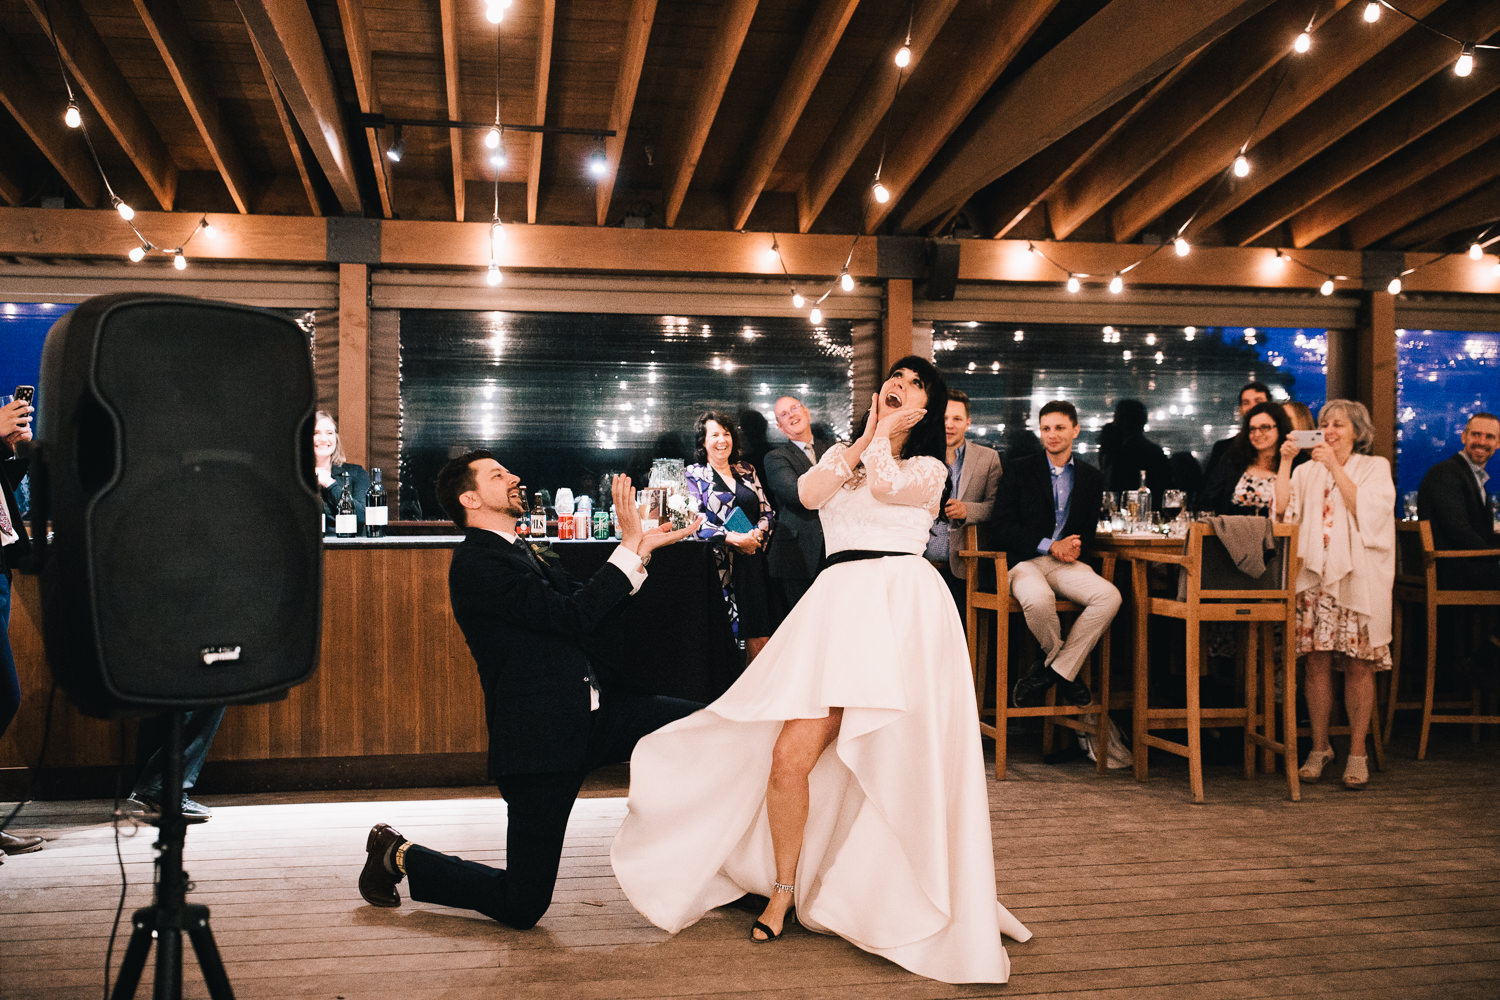 2019_05_ 182019.05.19 Lisa + Eddie South Bay Wedding Blog Photos Edited For Web 0144.jpg